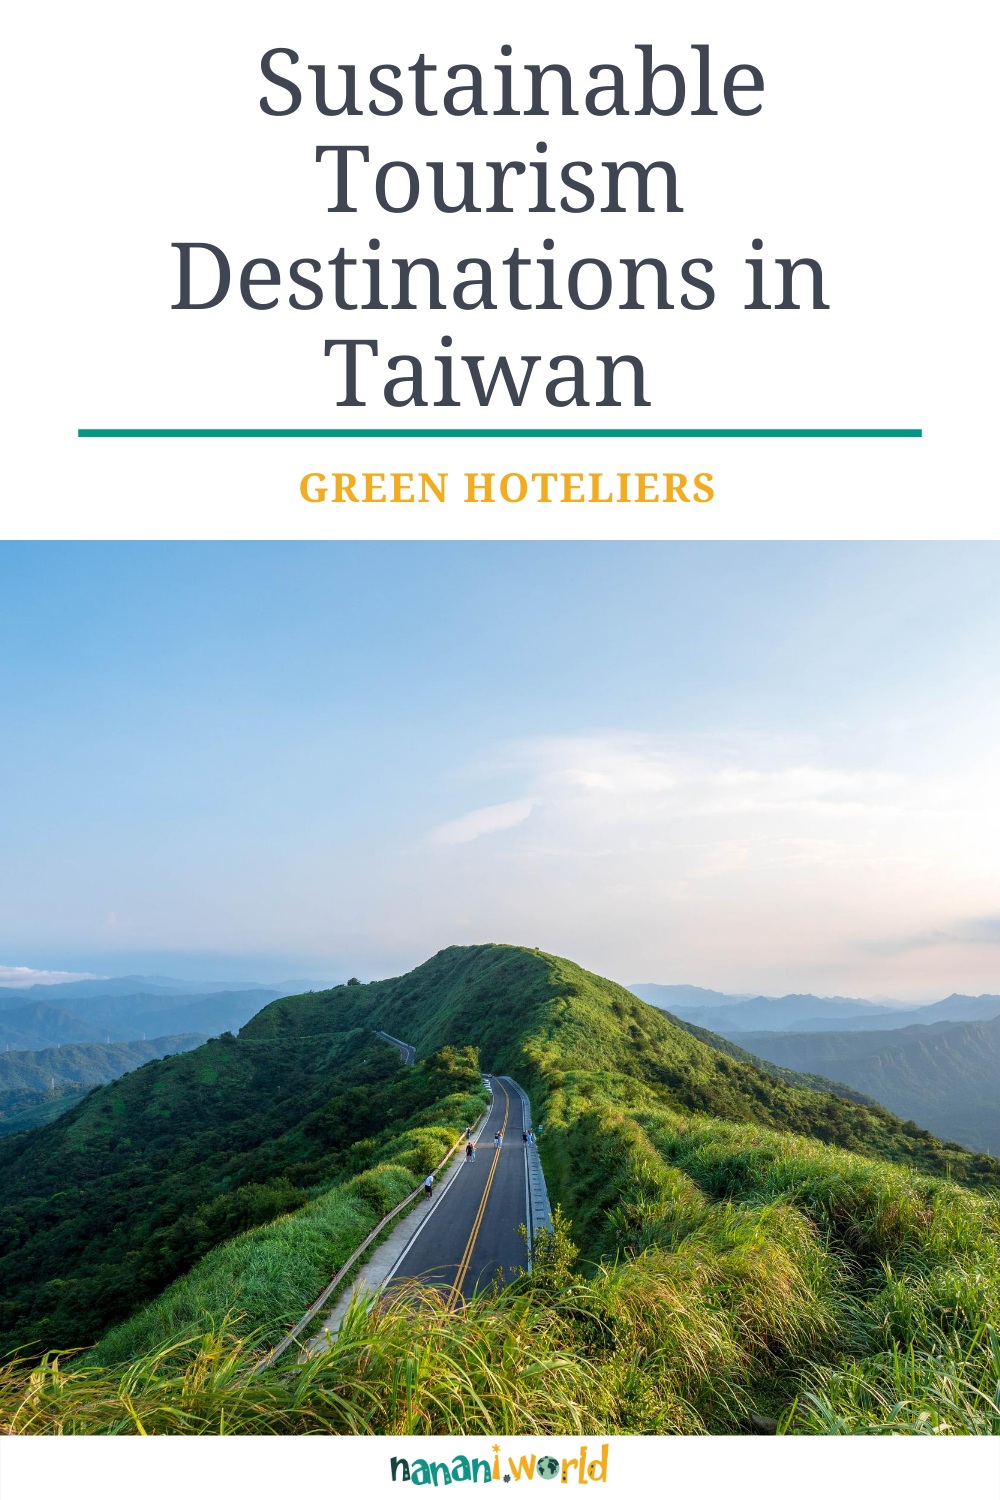 Green Hoteliers of Sustainable Tourism Destinations in Taiwan